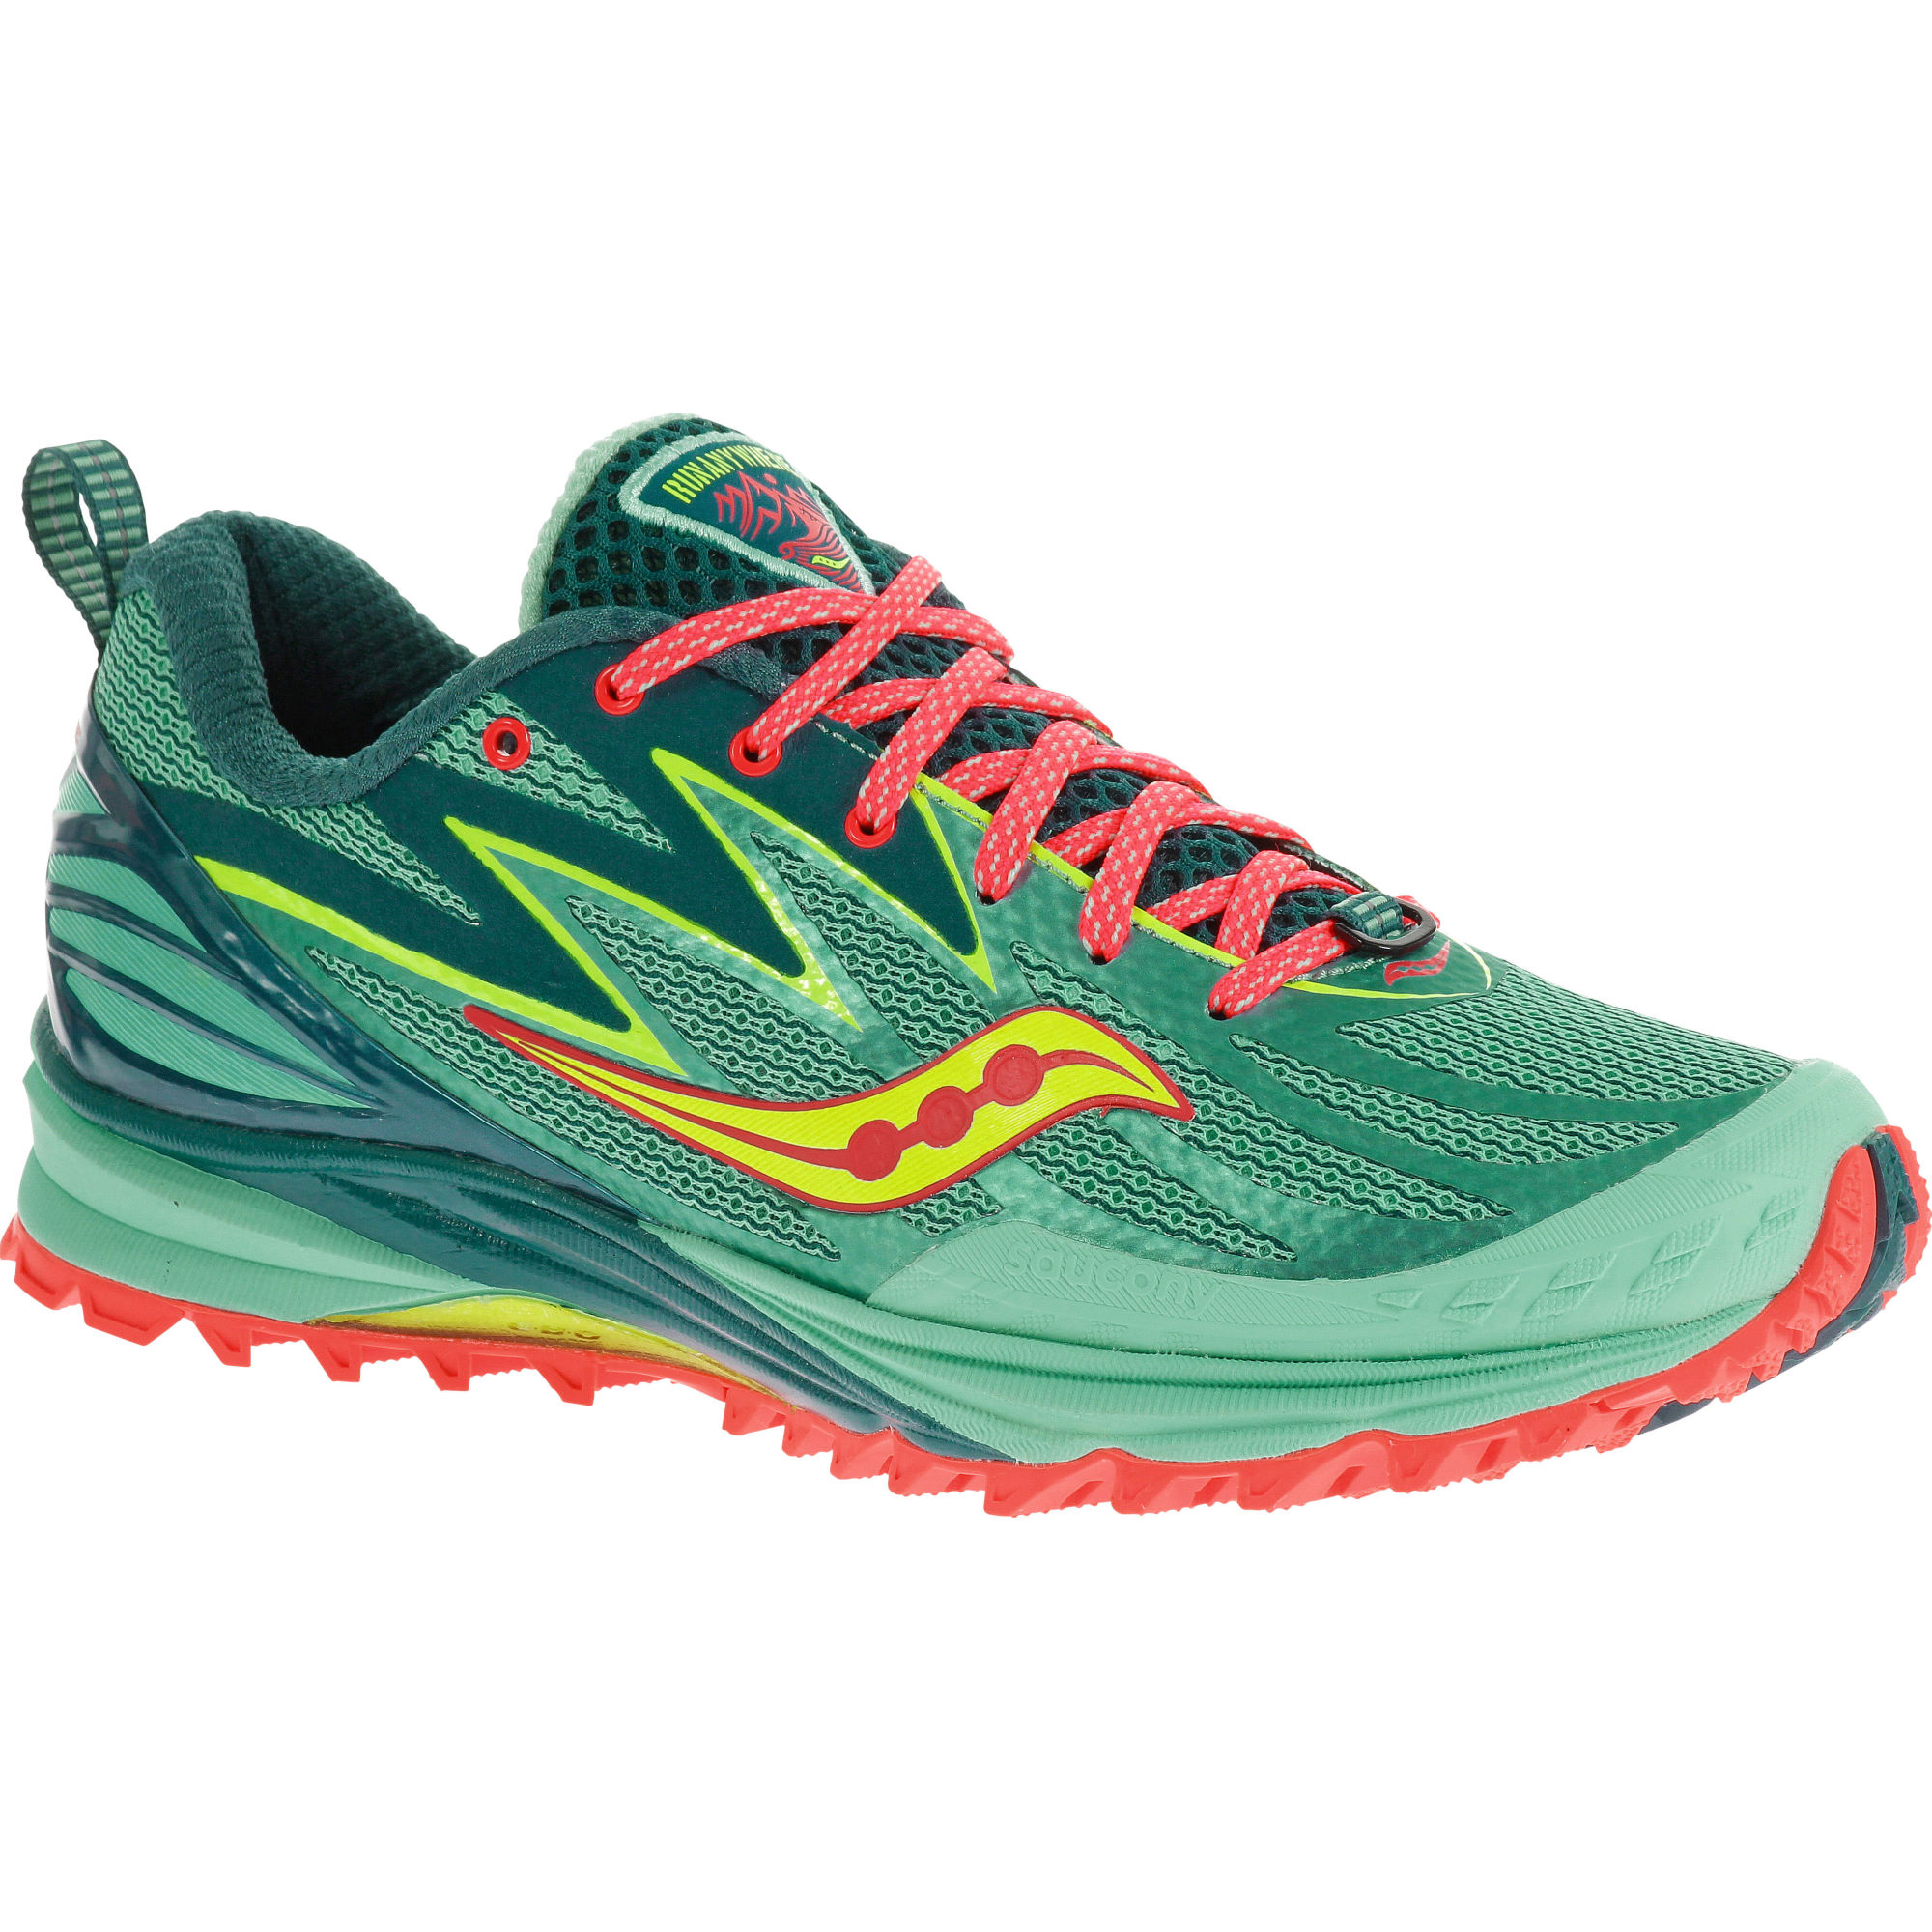 Saucony Kinvara  Running Shoes Aw Review